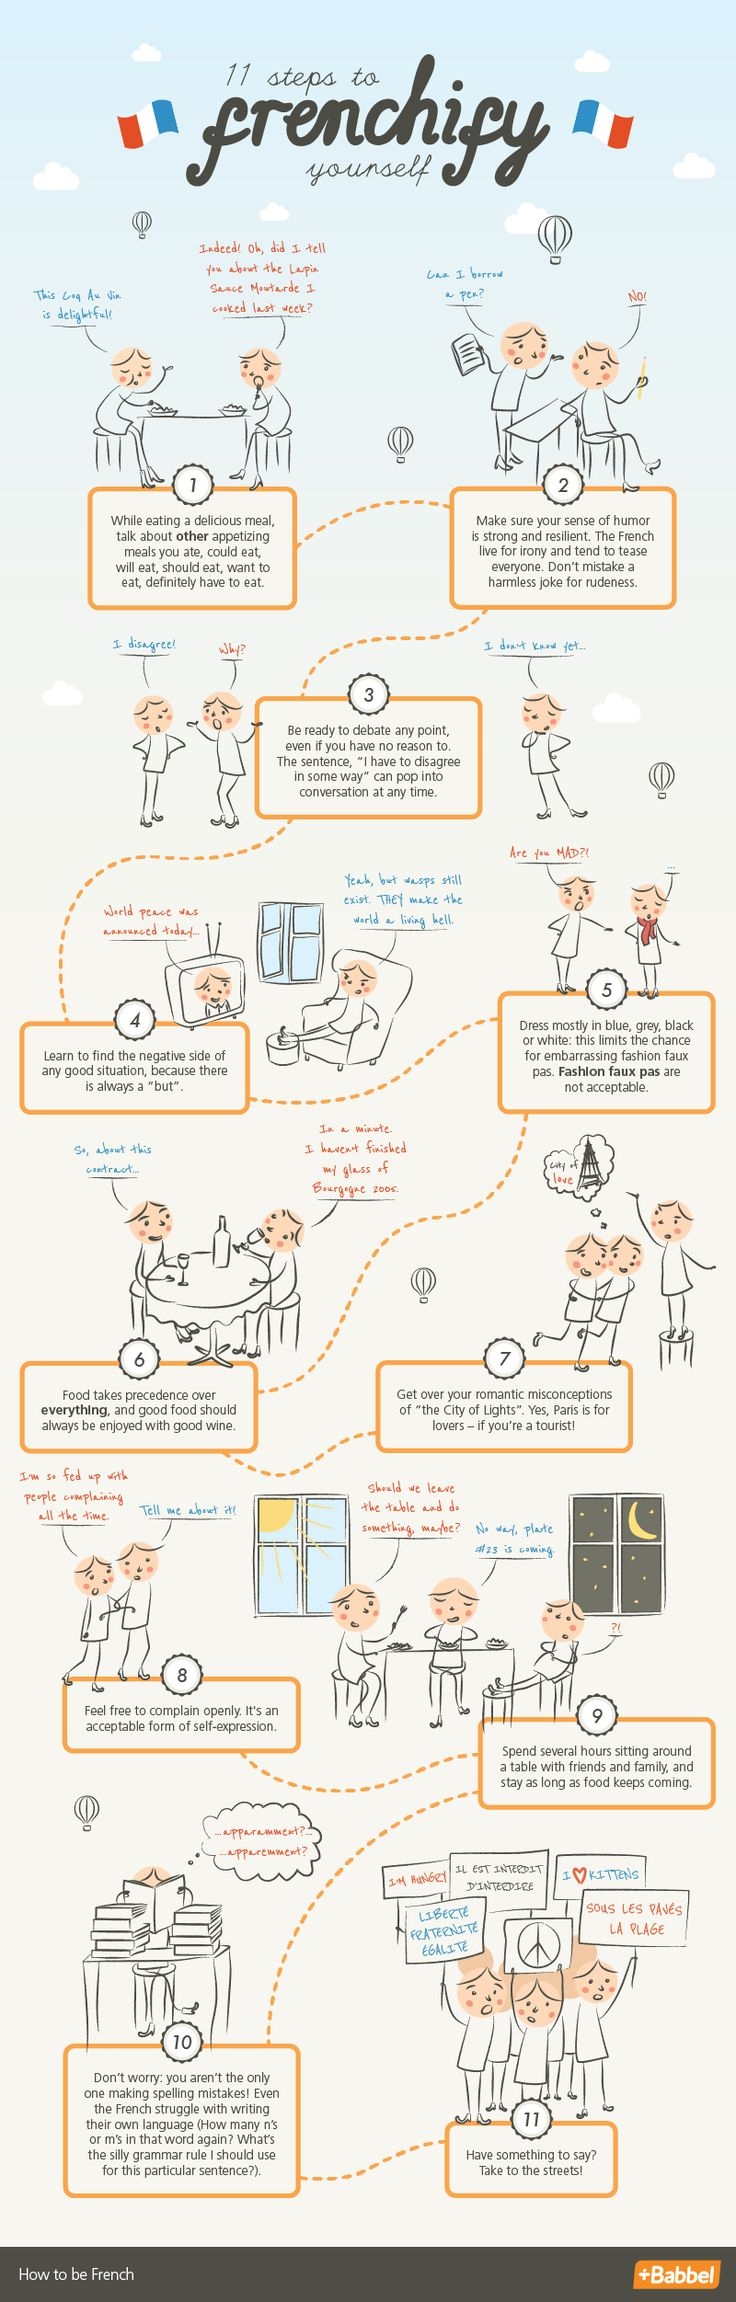 11 Steps to Frenchify Yourself http://www.babbel.com/magazine/11-steps-to-frenchify-yourself